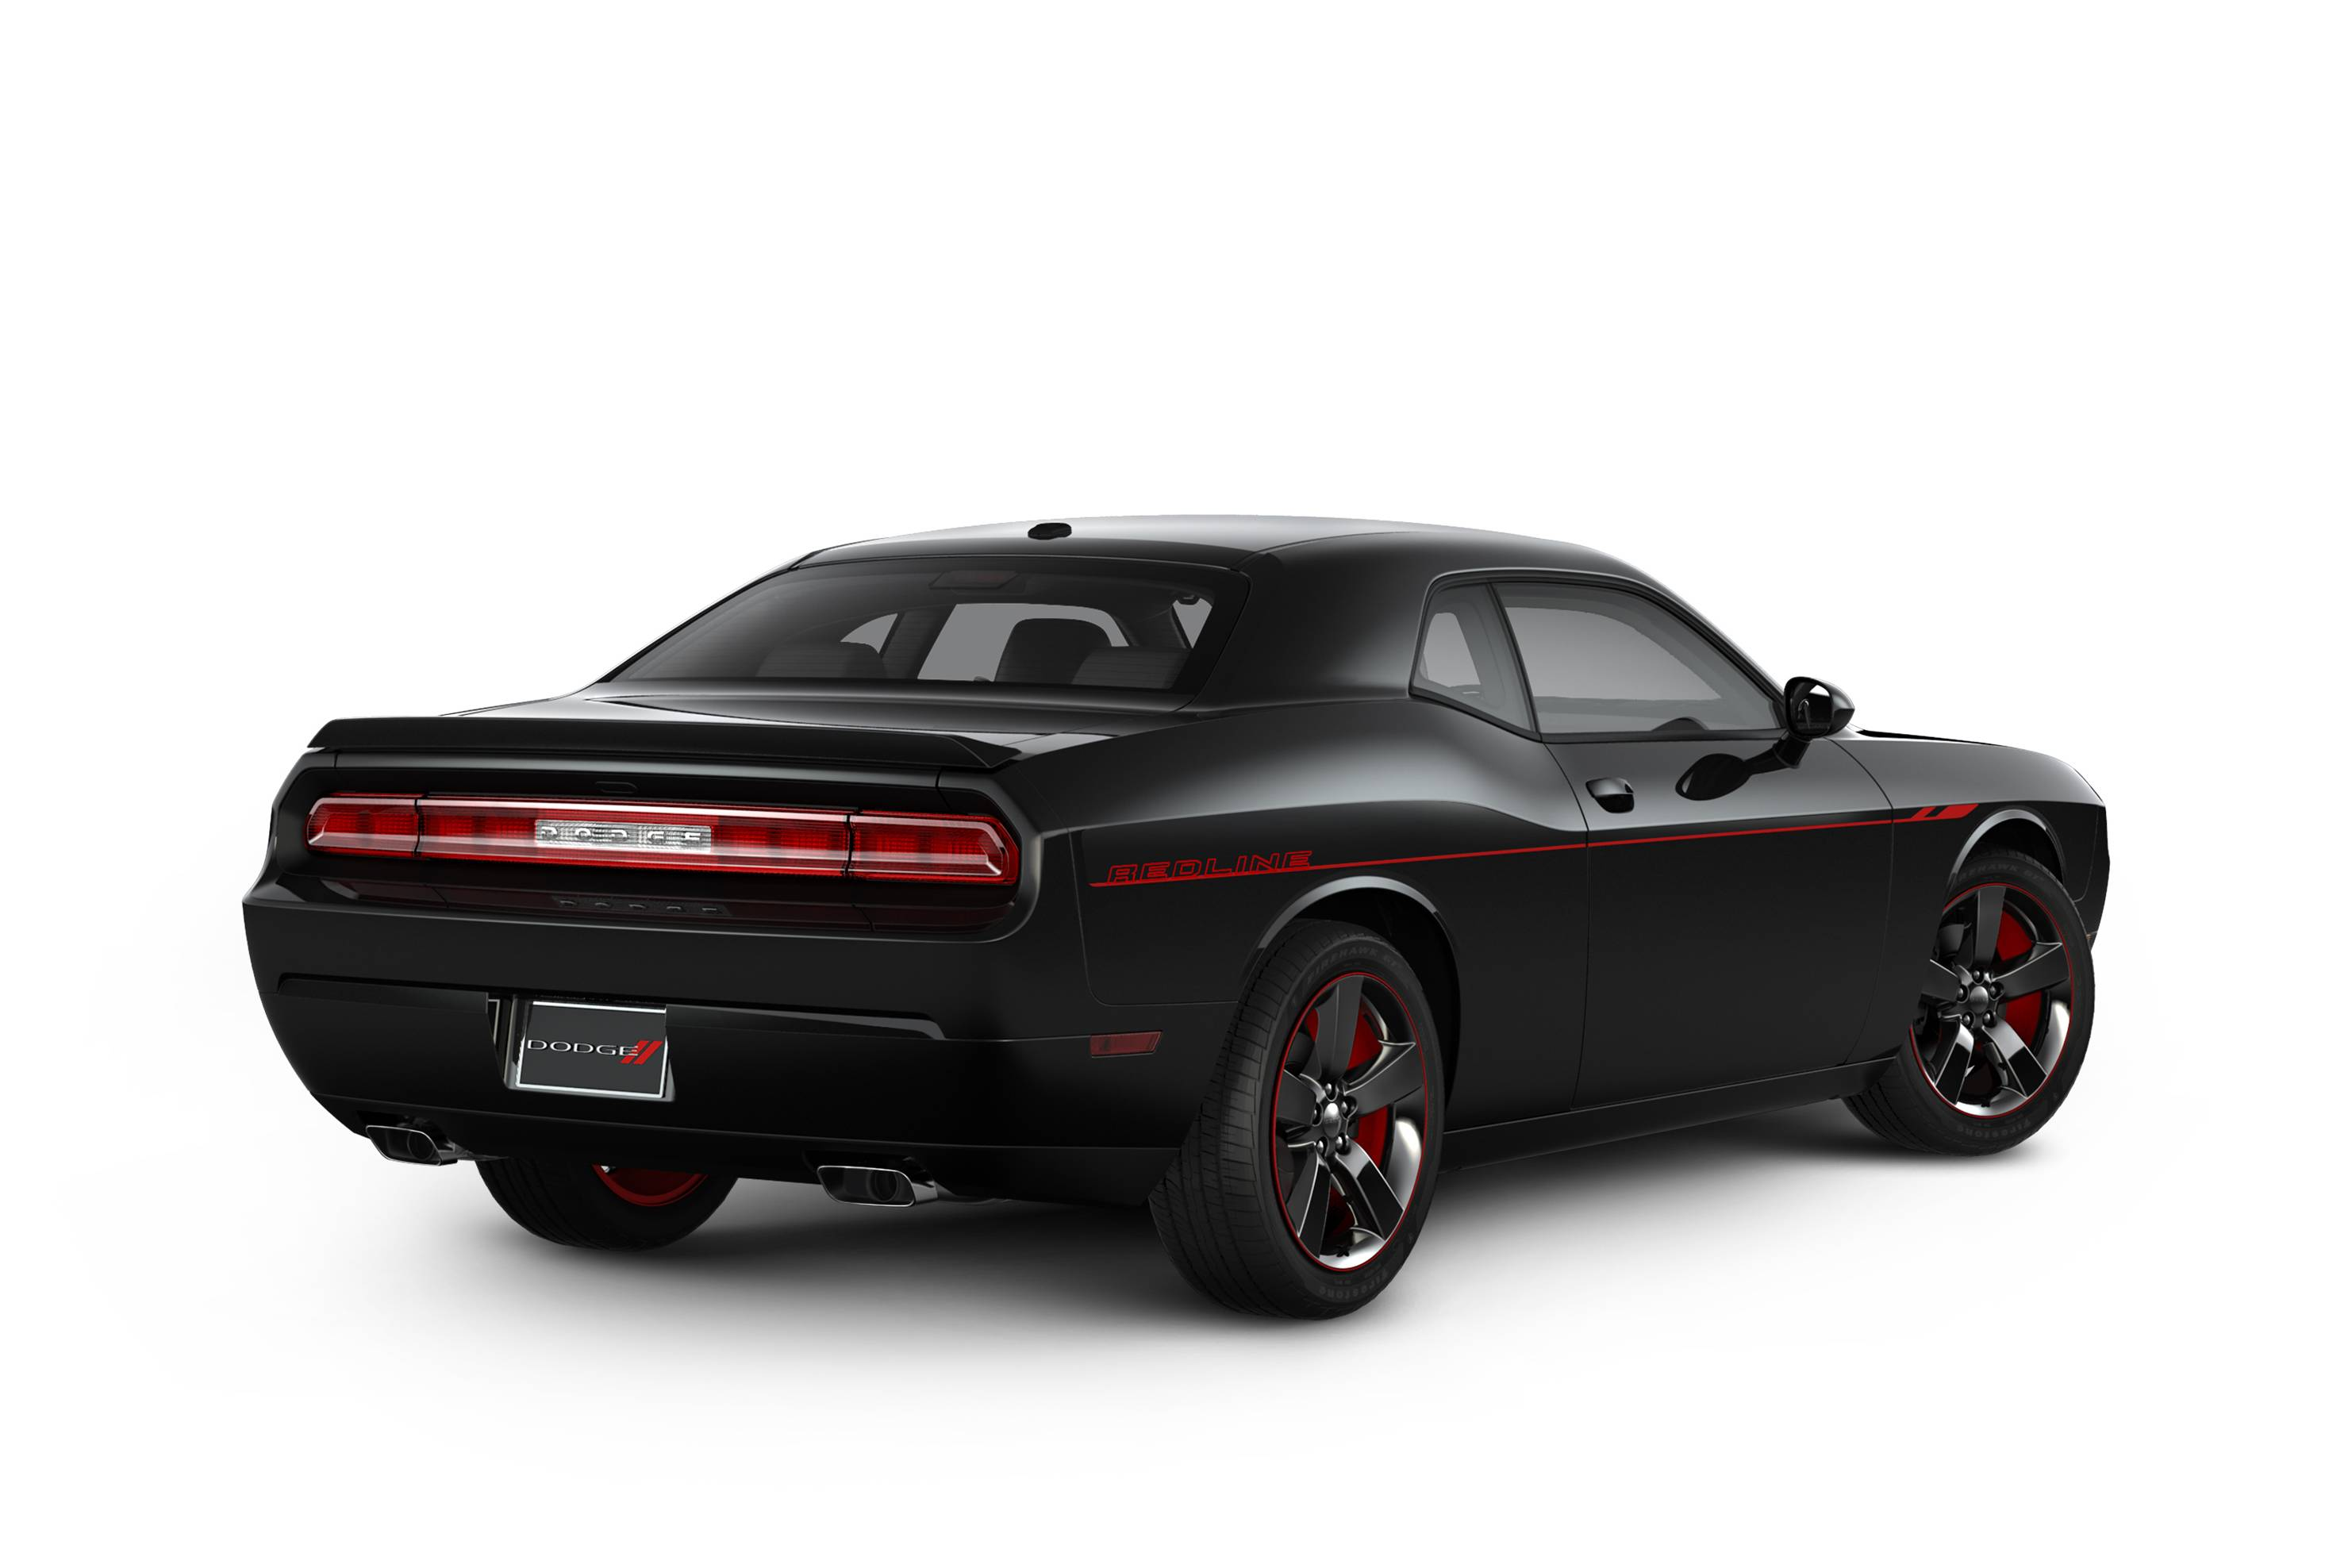 2019 Dodge Challenger Rt Redline Car Photos Catalog 2019